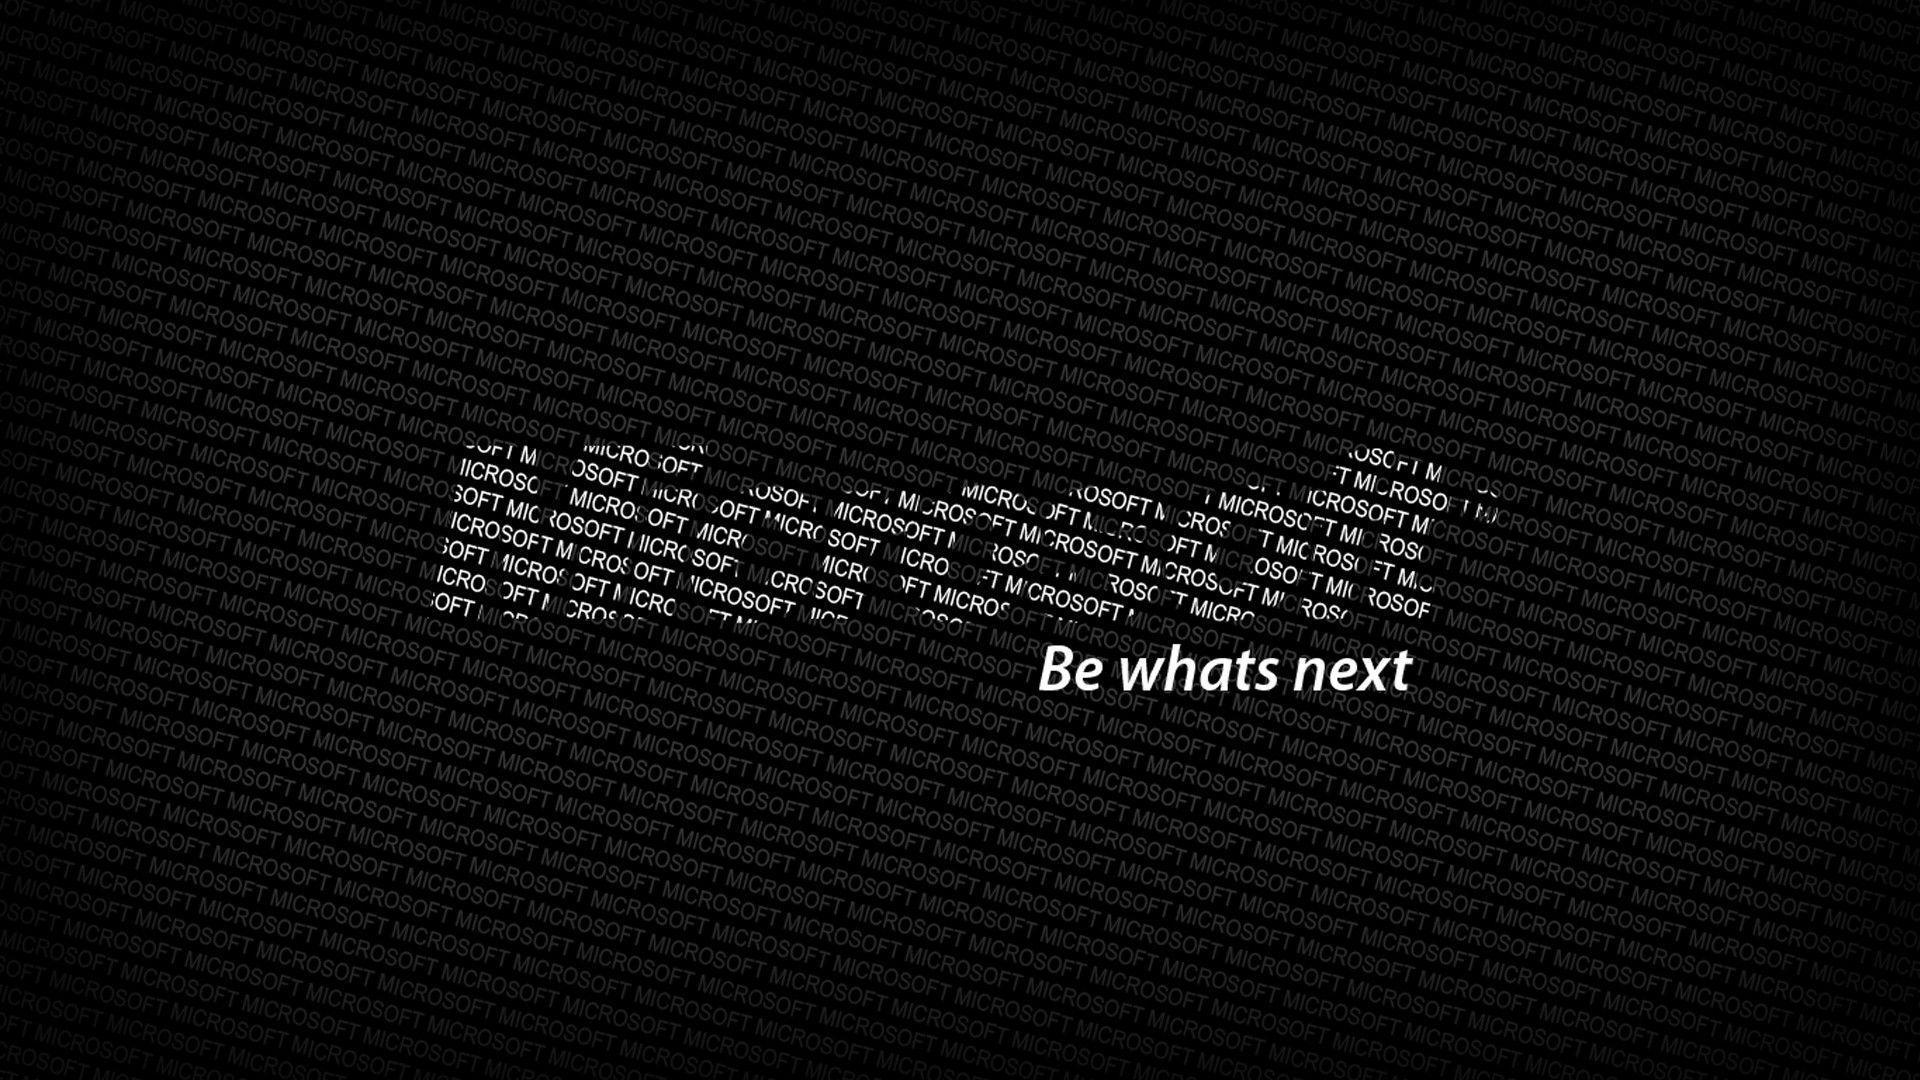 Download Microsoft Wallpapers 18436 1920x1080 px High Resolution